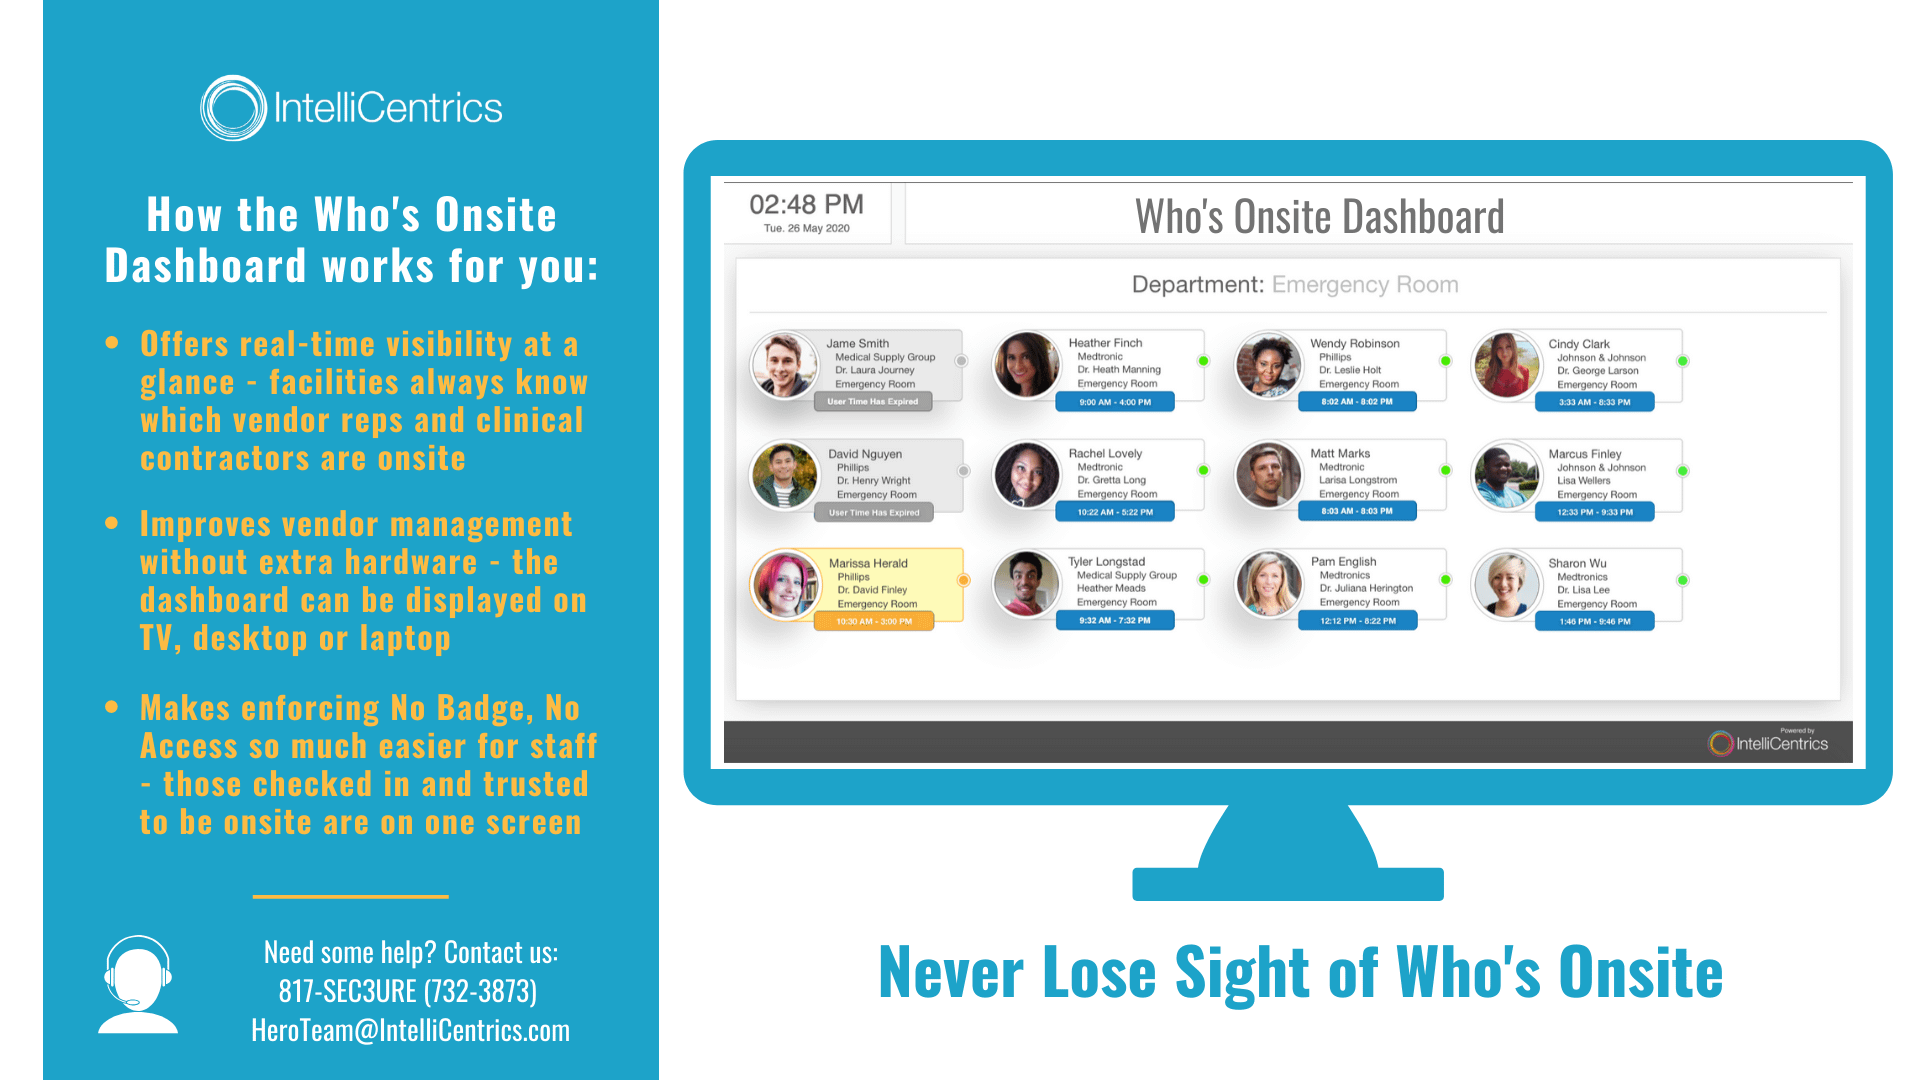 Who's Onsite Dashboard